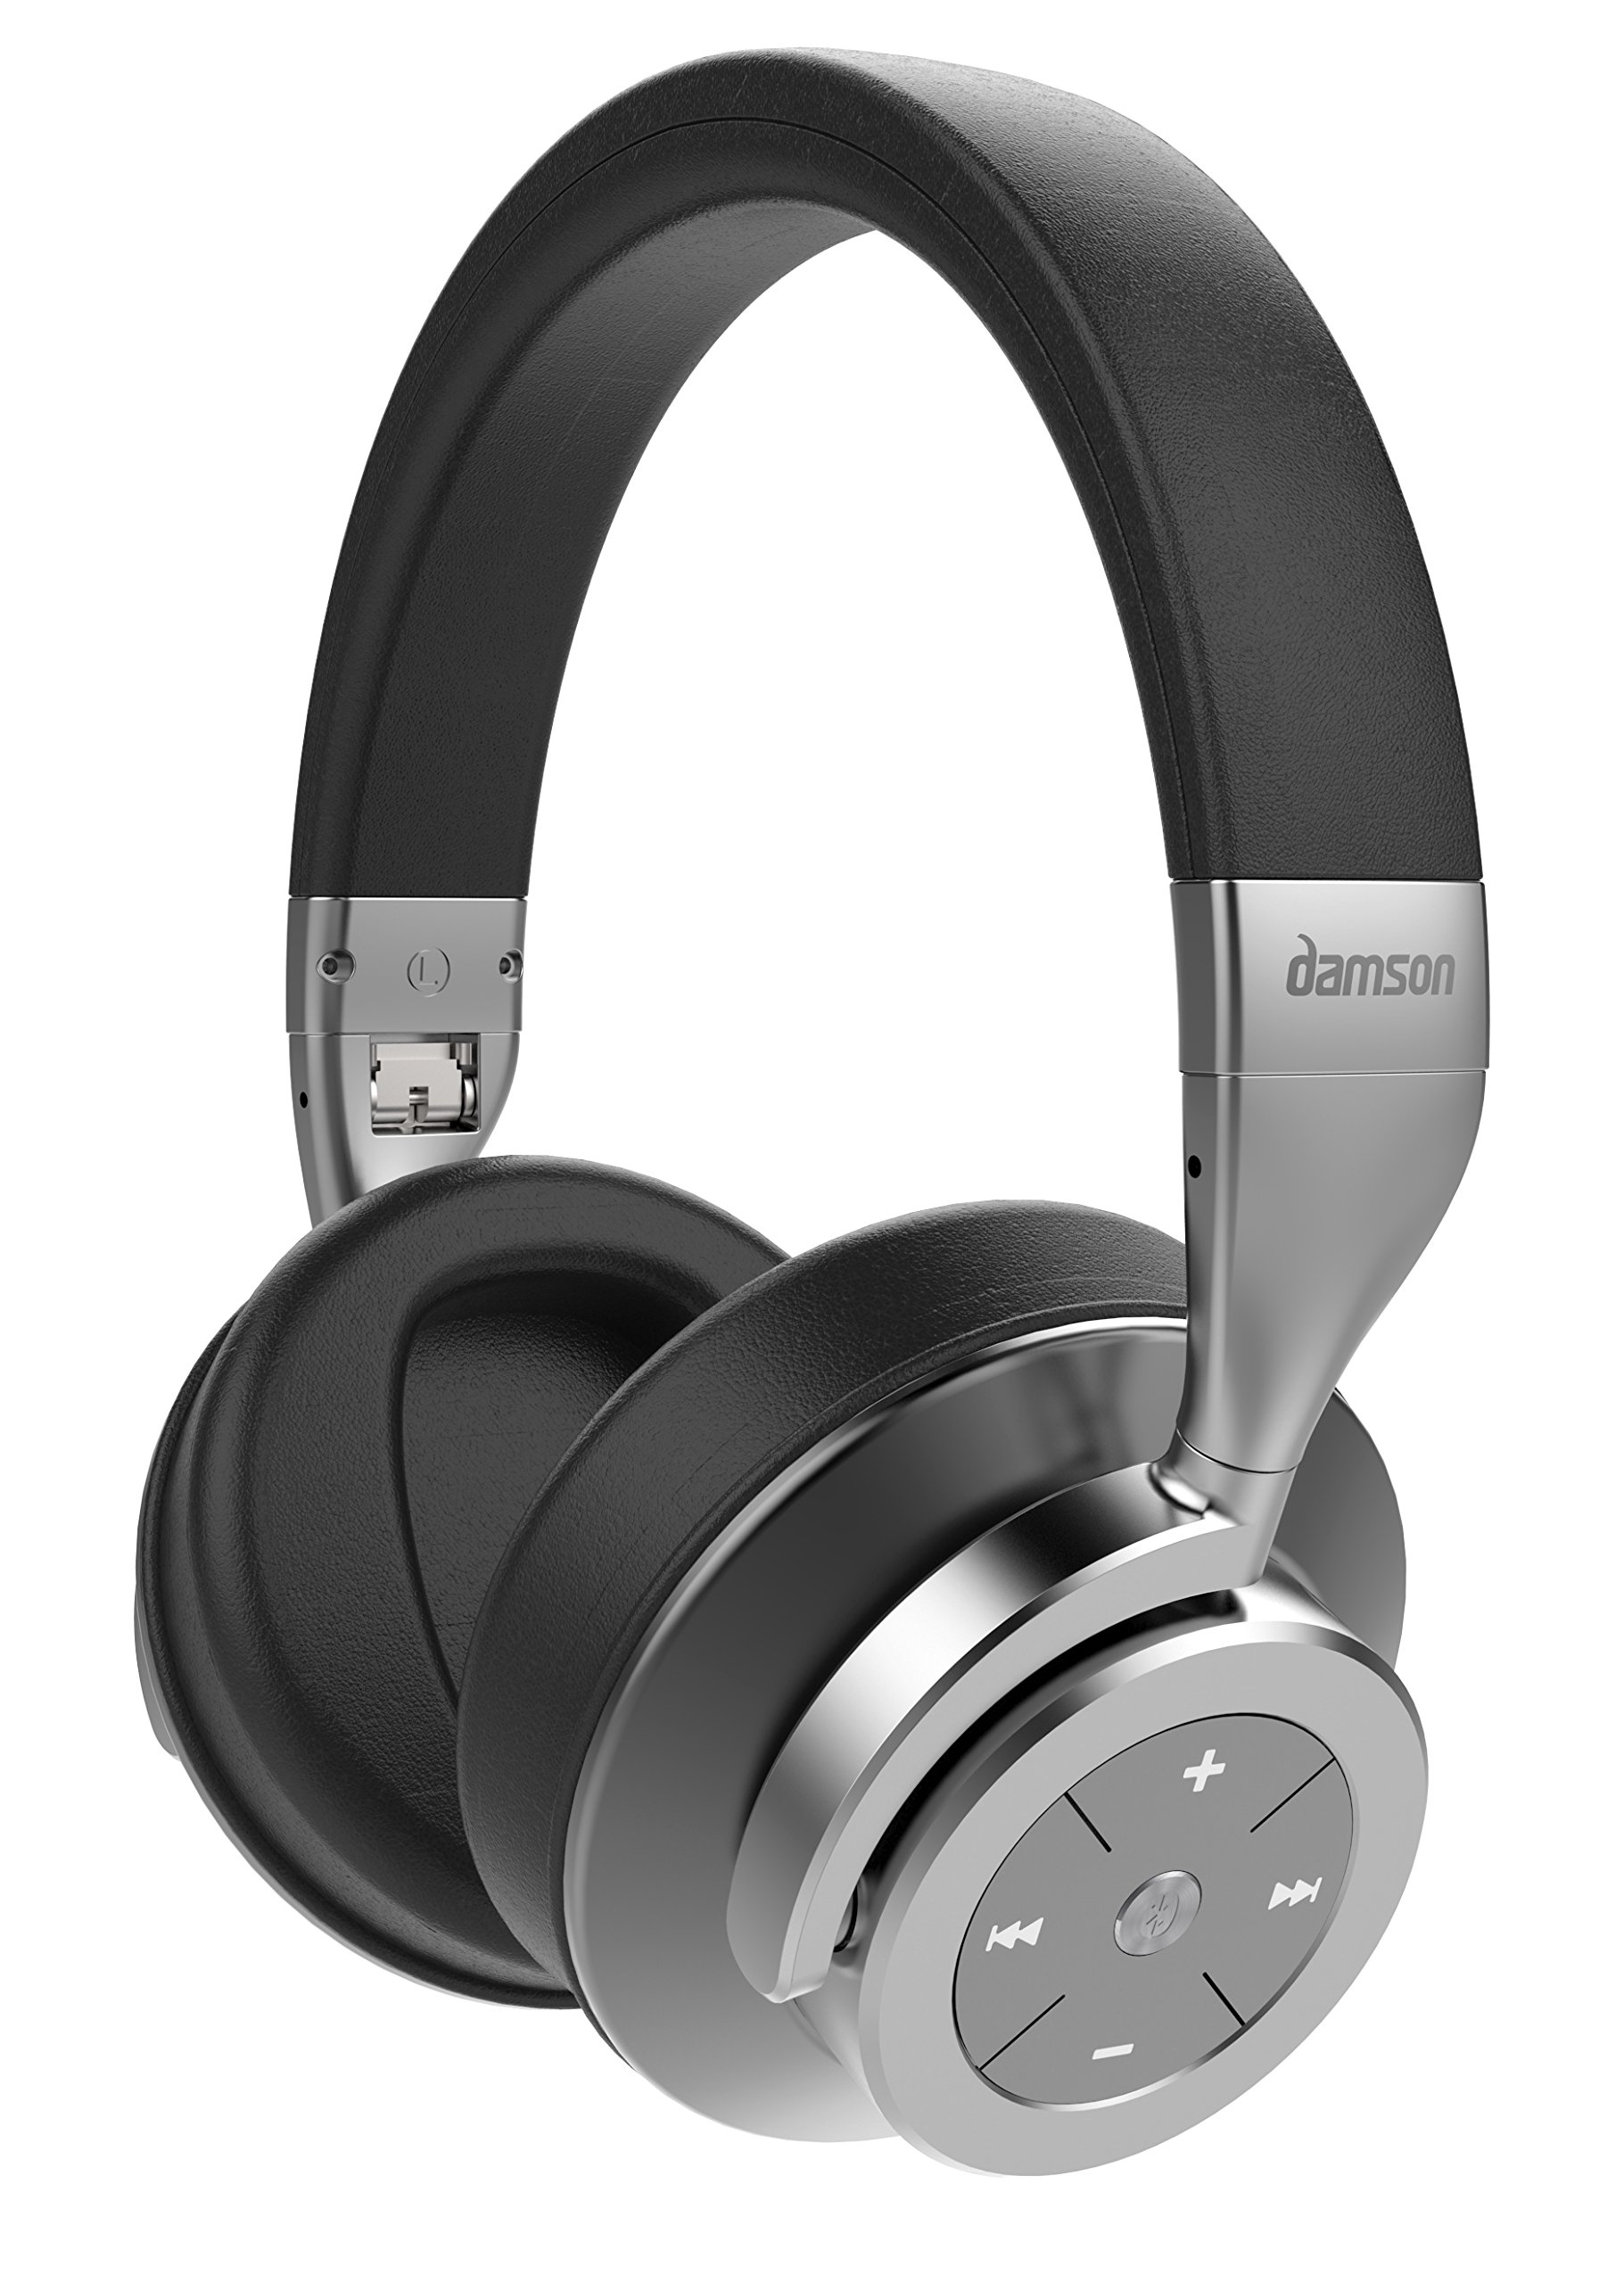 Damson HeadSpace Bluetooth Wireless Over Ear Active Noise Cancelling Headphones by Damson